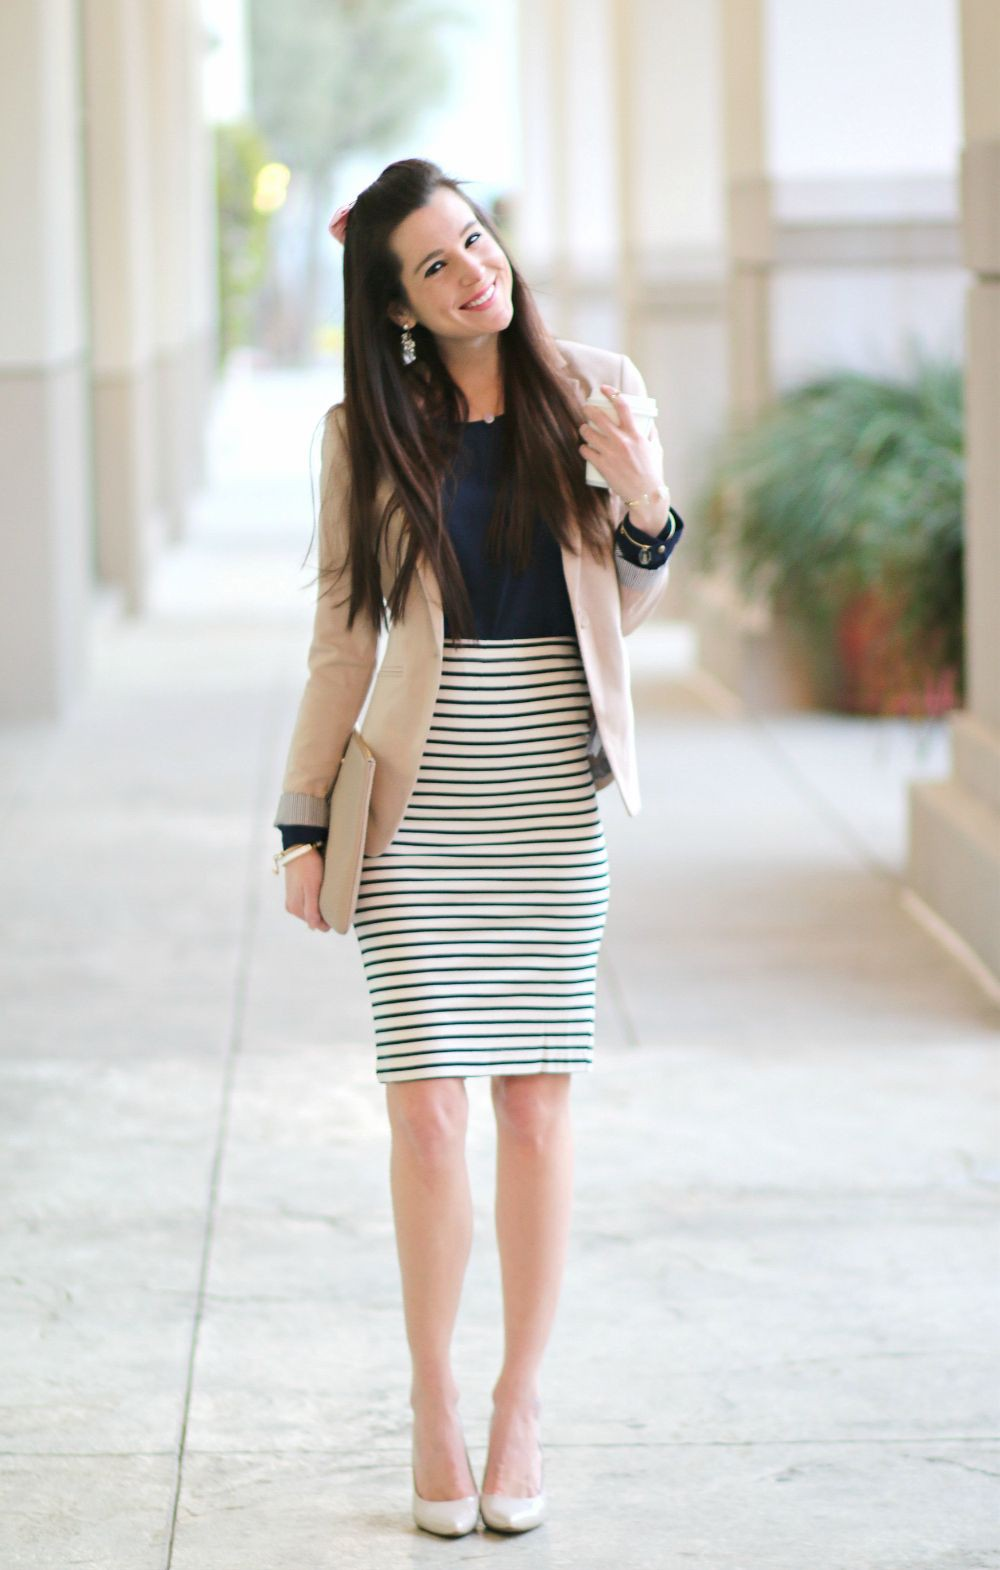 Classy outfit professional work outfits, business casual, street fashion, casual wear